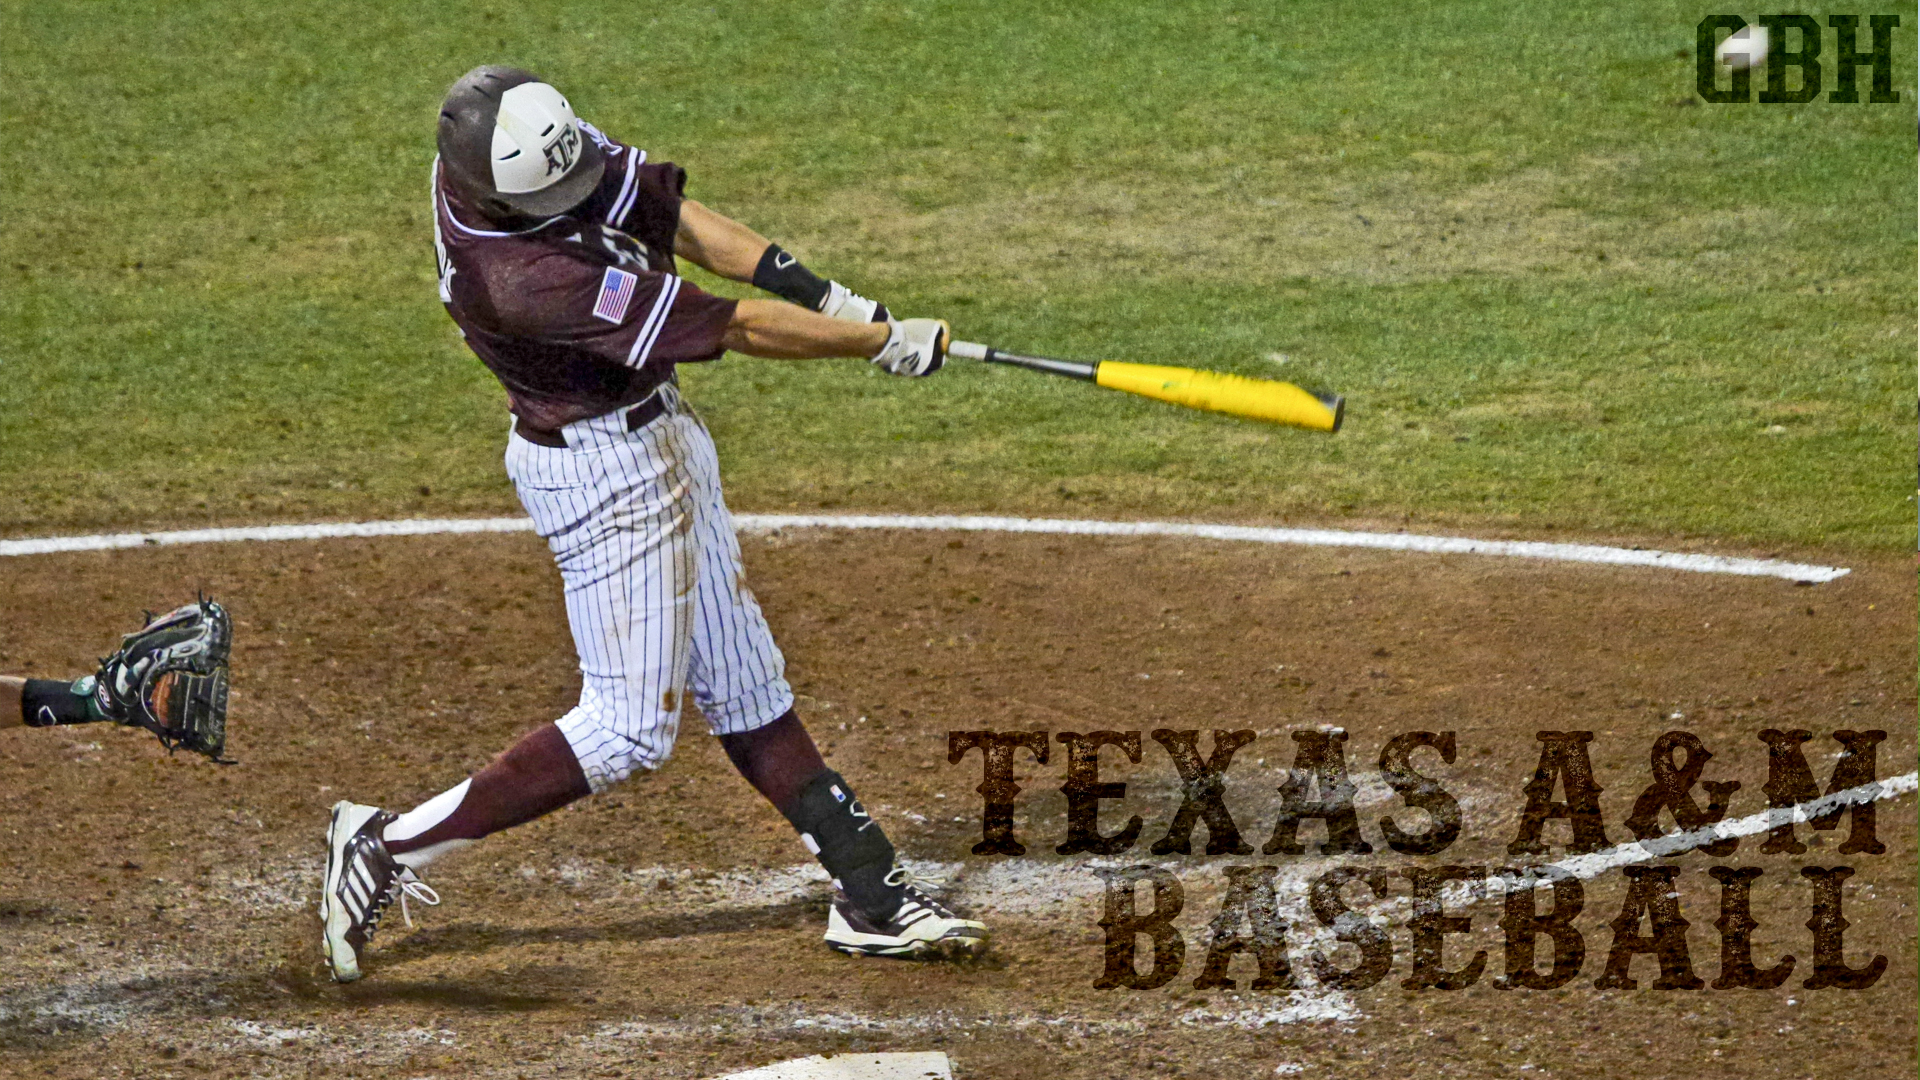 Aggie Baseball Wallpapers